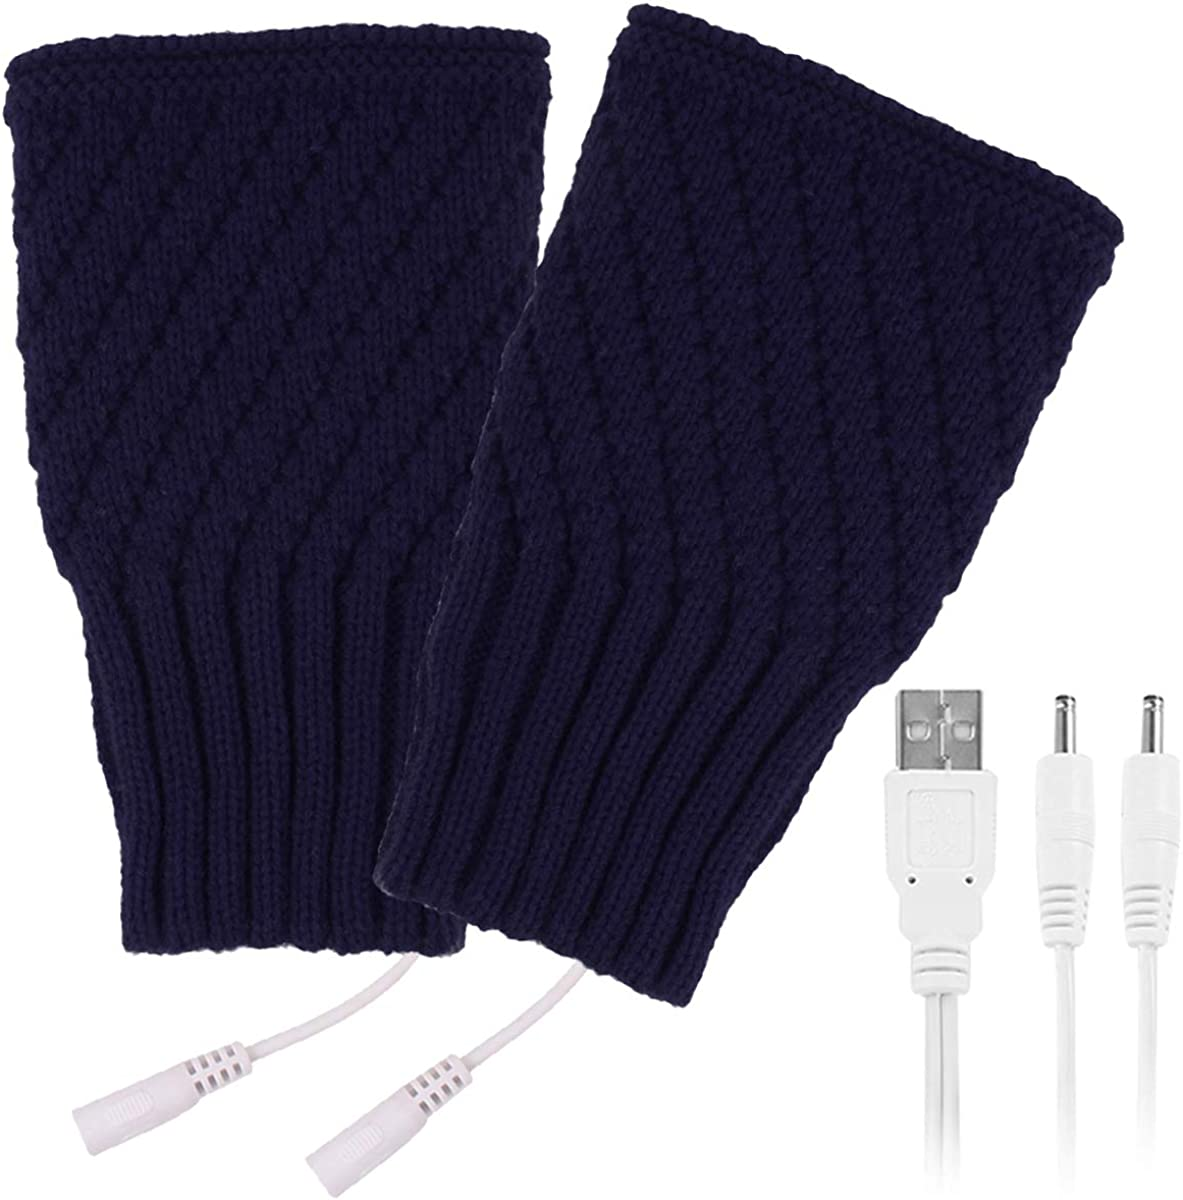 puseky 1 Pair USB Heated Gloves for Men Winter Knitted Warm Mitten Gloves for Typing Working